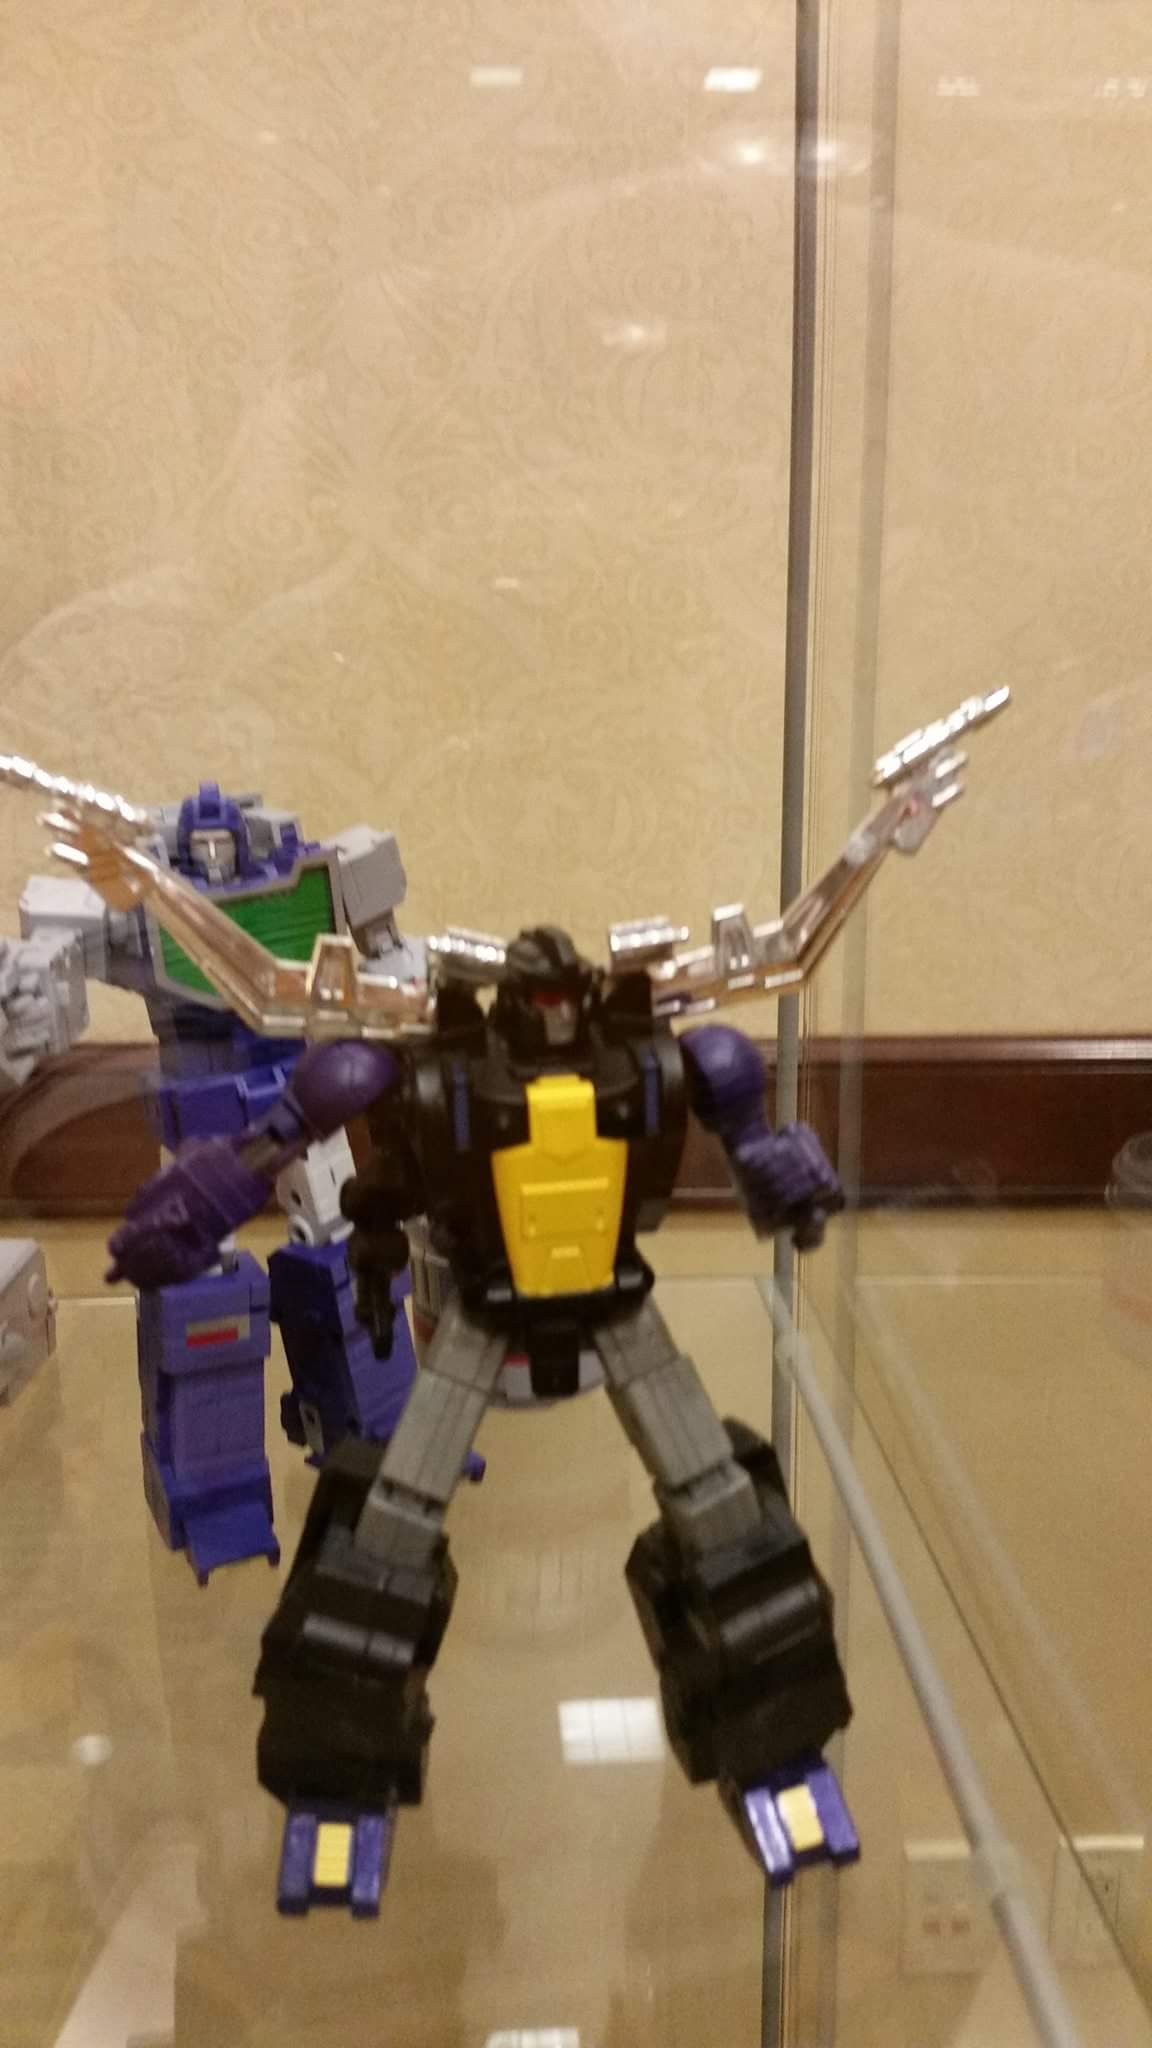 [Fanstoys] Produit Tiers - Jouet FT-12 Grenadier / FT-13 Mercenary / FT-14 Forager - aka Insecticons - Page 2 Ywx9KrUQ